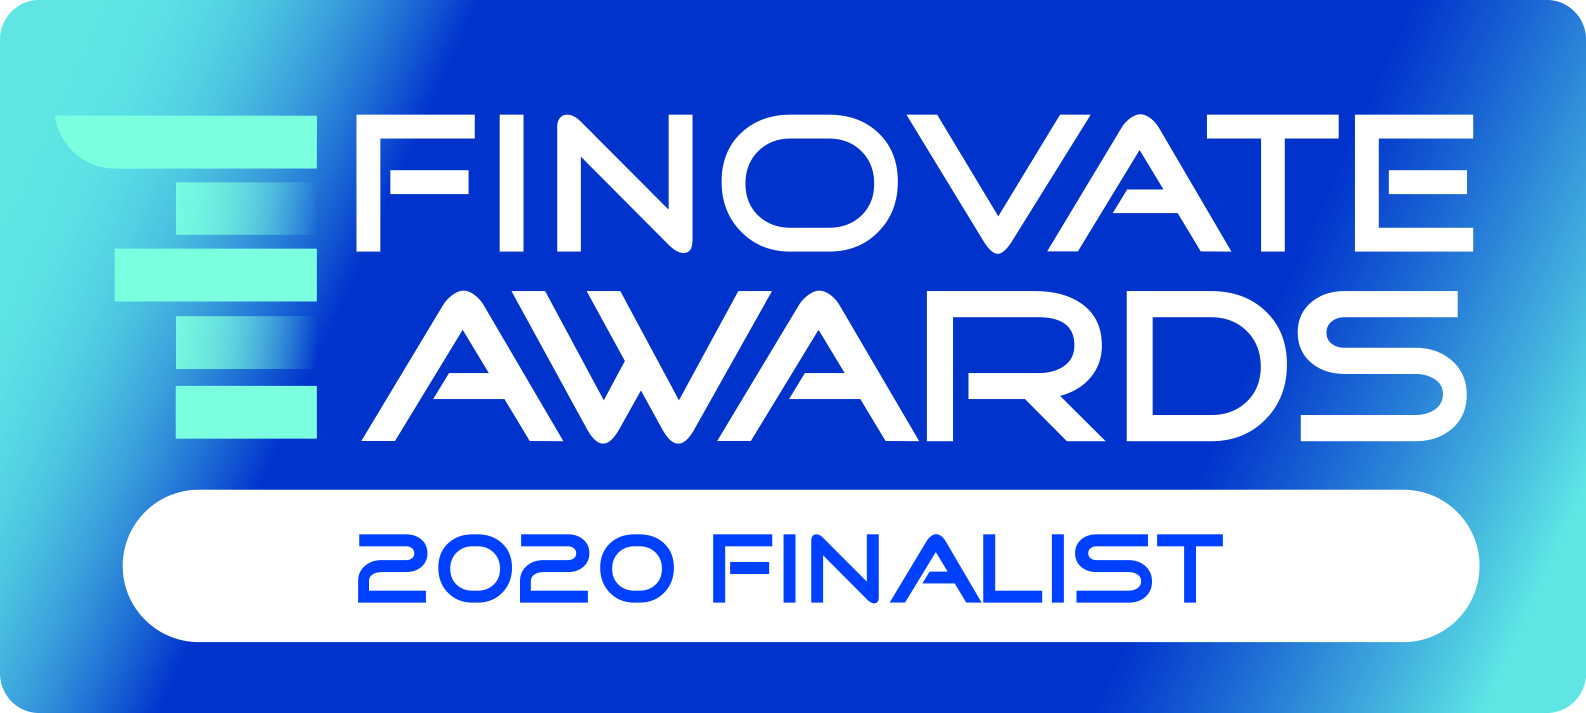 Finovate Awards 2020 Finalist - Kasasa Care, Keith Brannan